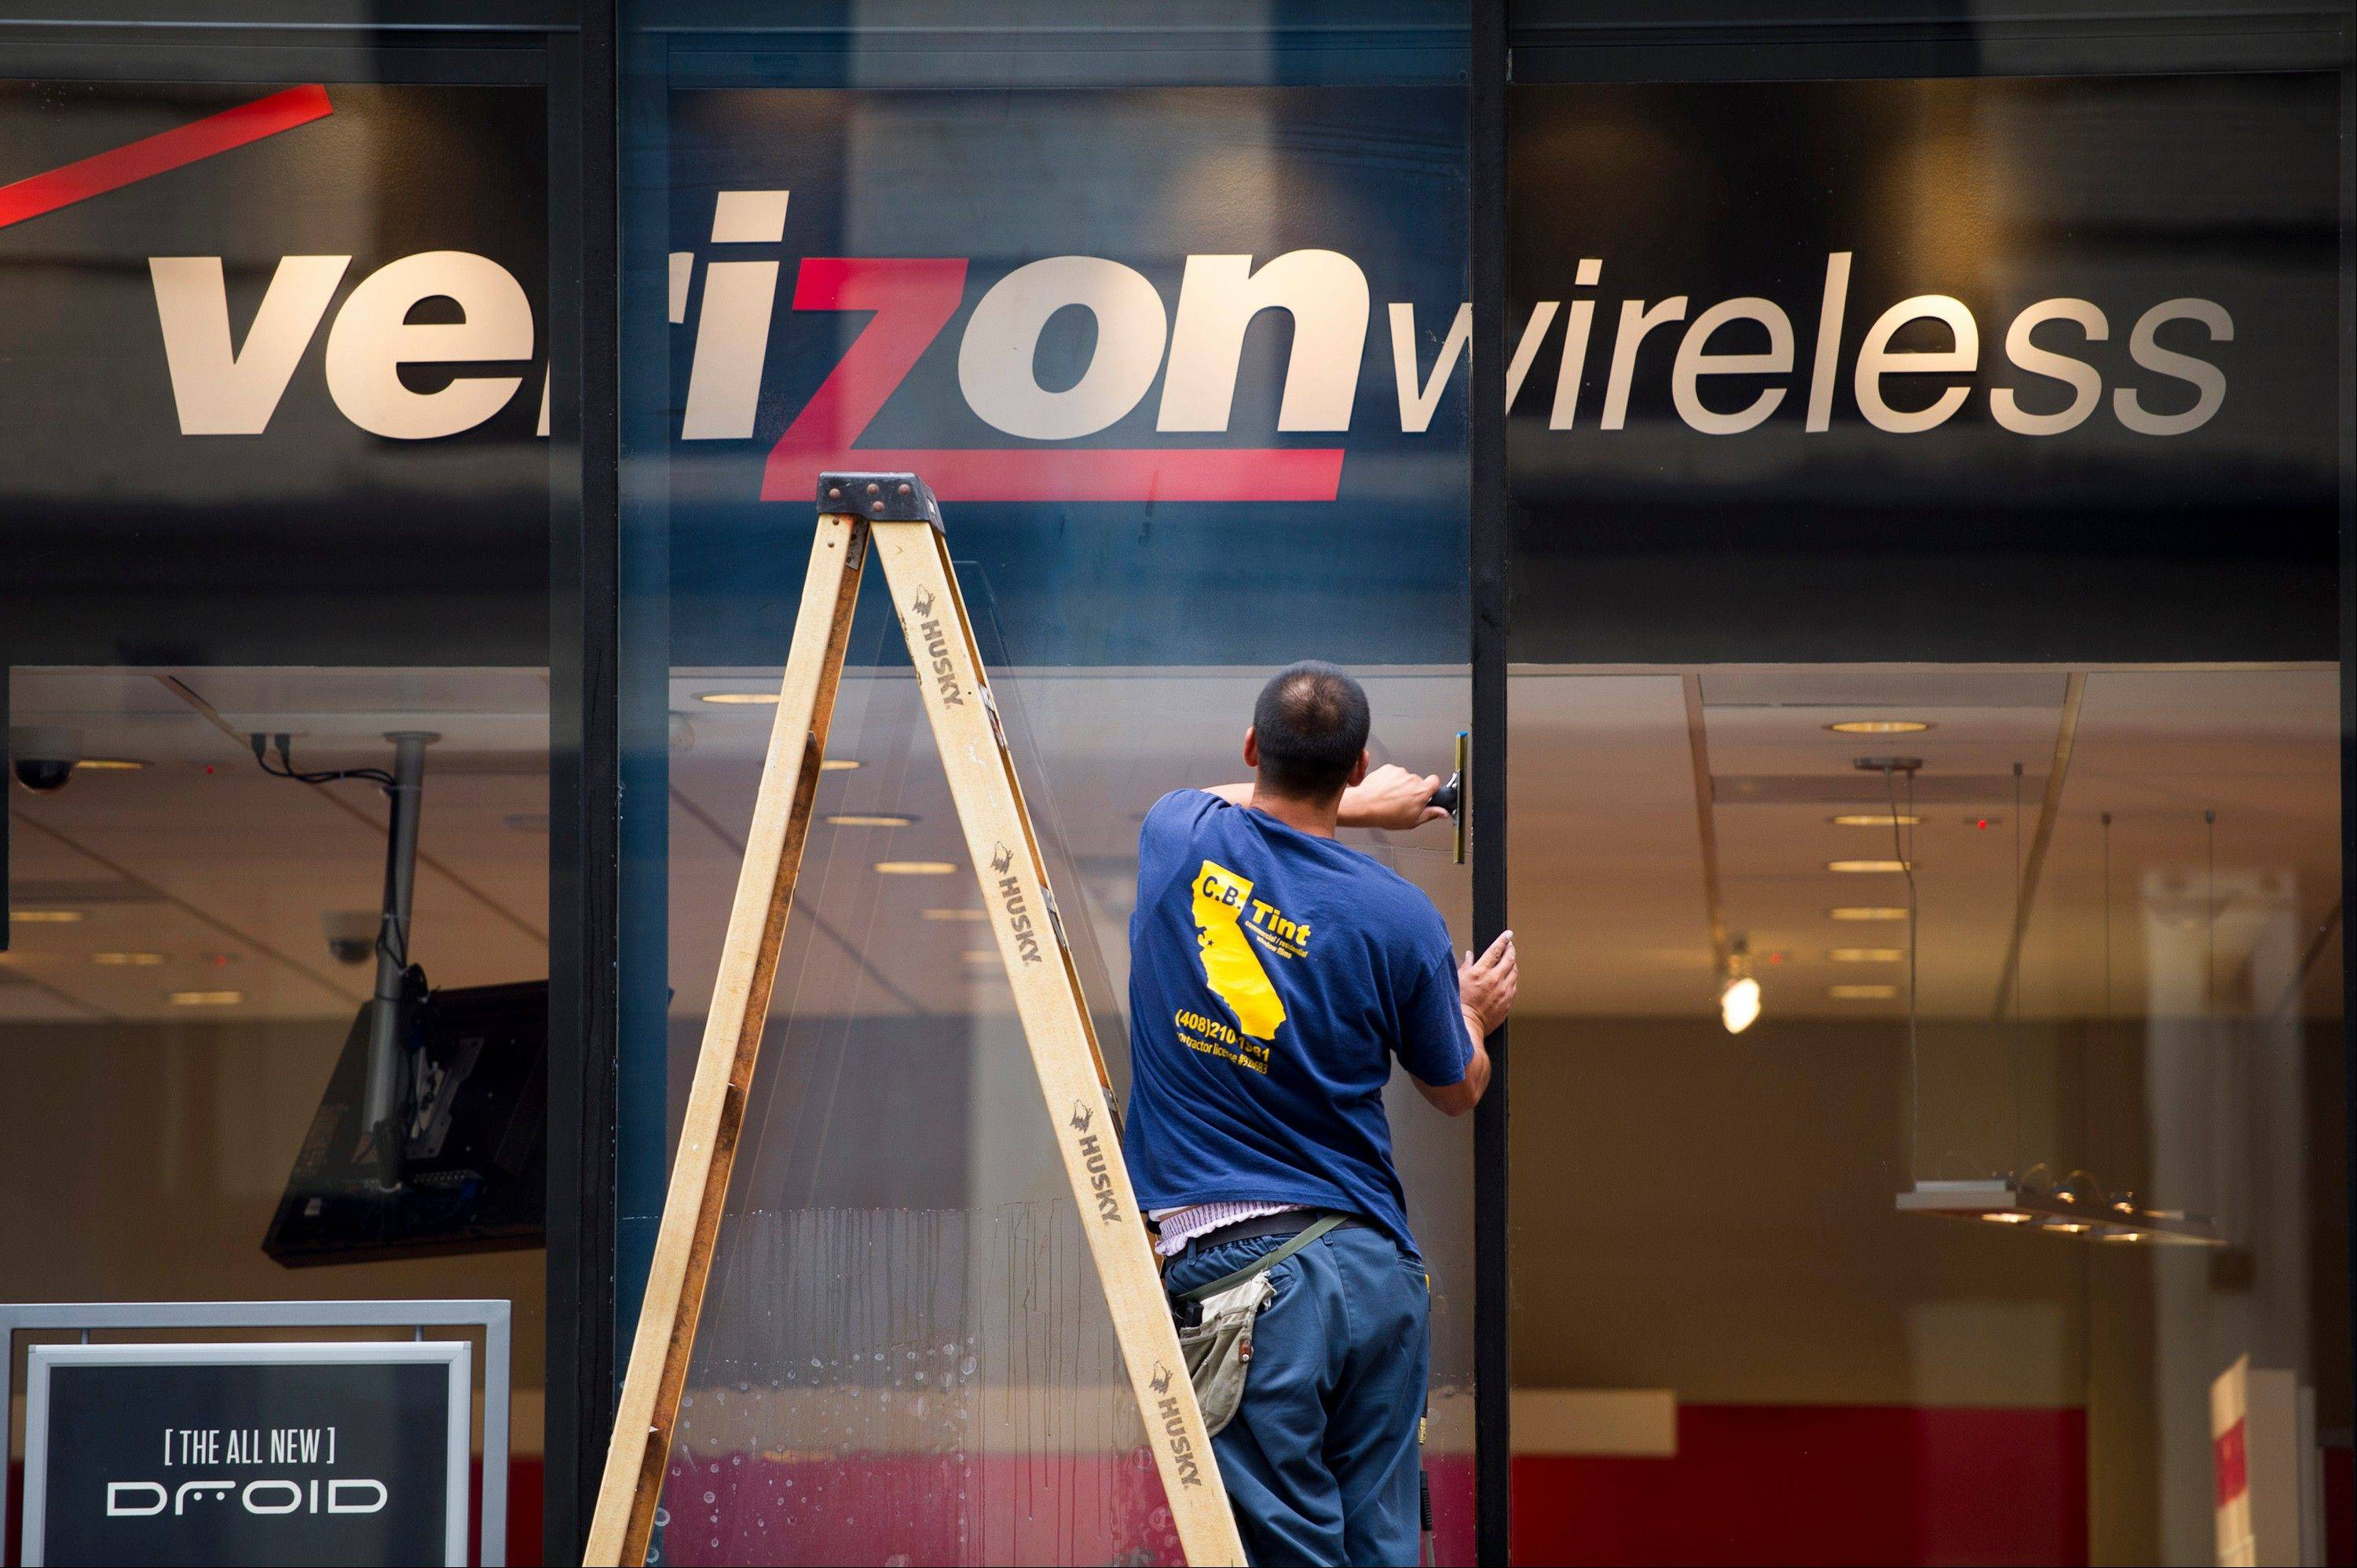 Verizon's $130 billion deal with Vodafone is huge for both companies, although Verizon customers in the U.S. are unlikely to see any big changes to their bills or their service.